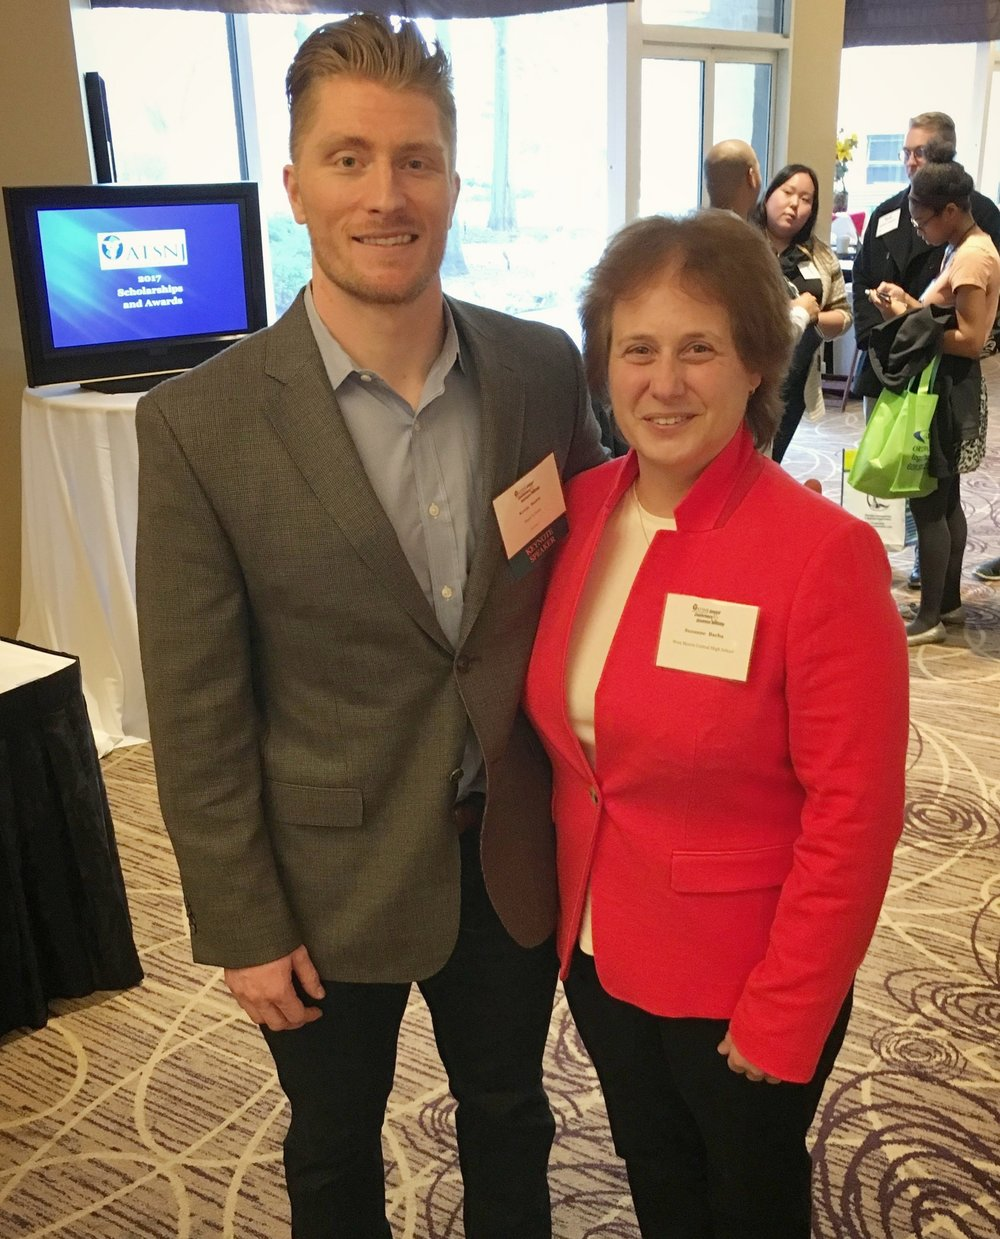 2017 ATSNJ Keynote Speaker - Pictured: Kevin with Suzanne Barba, the athletic trainer who saved his life back in 2007.